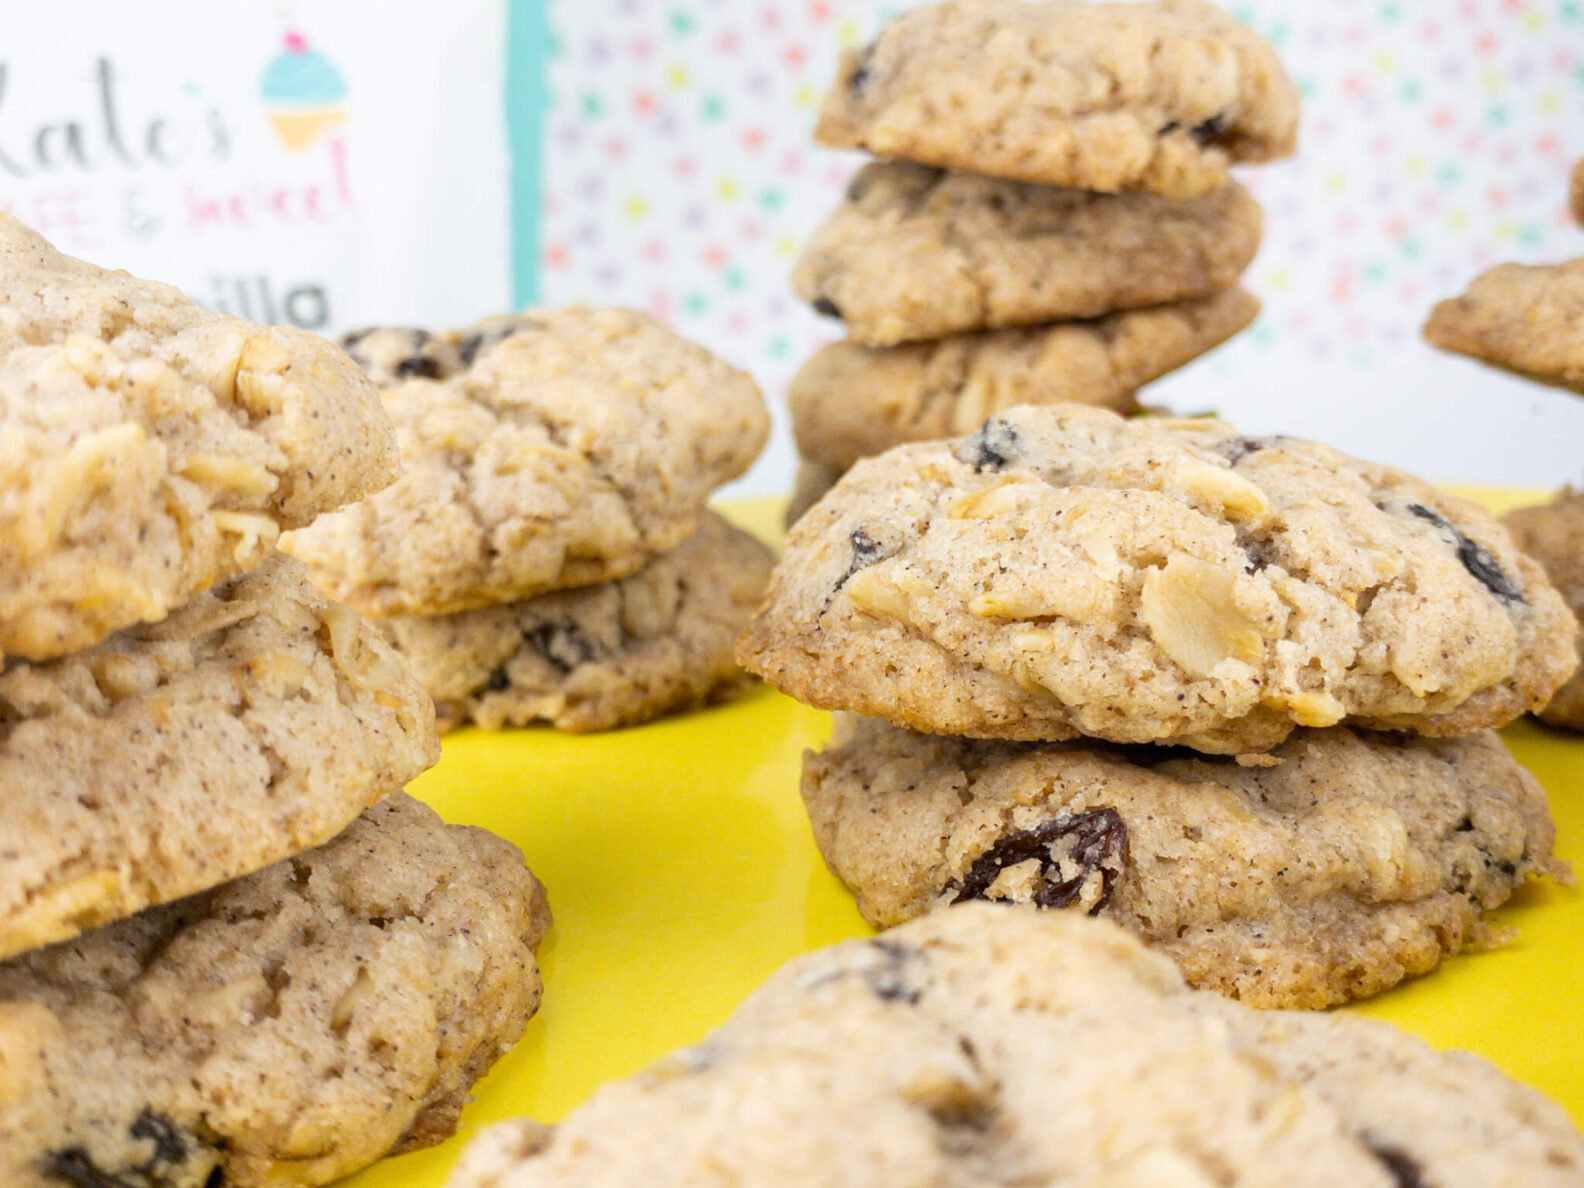 Kate's Safe and Sweet - Oatmeal Raisin Cookies with Mix